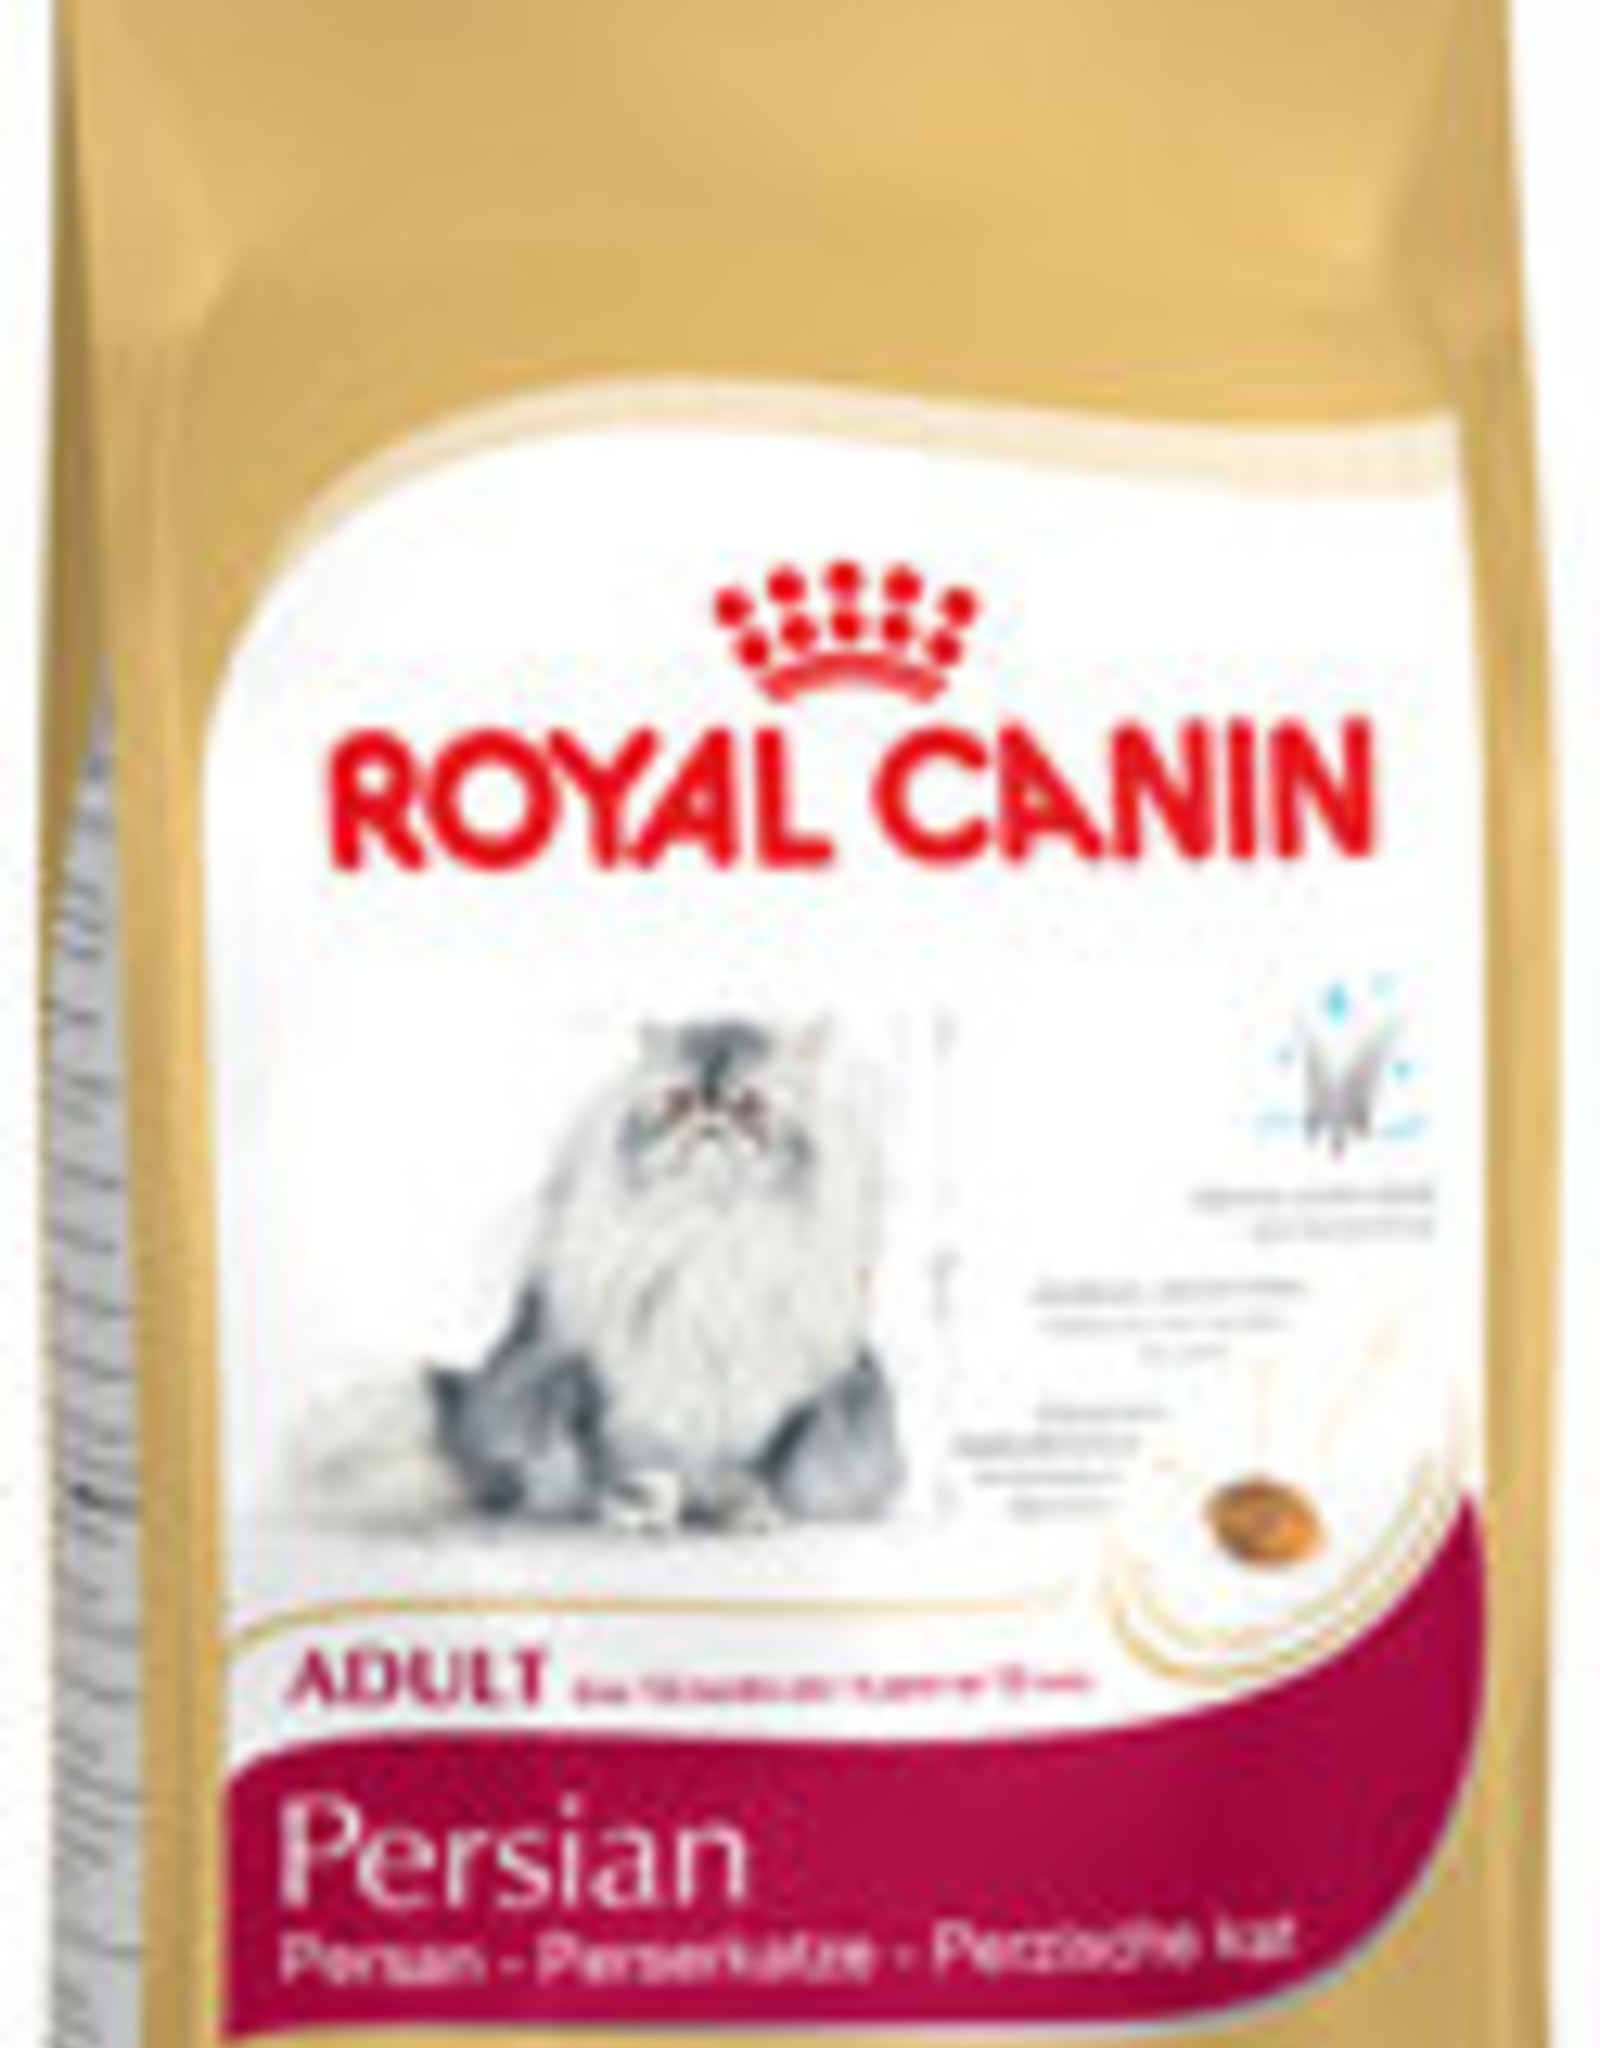 Royal Canin Royal Canin Fbn Persian 30 4kg